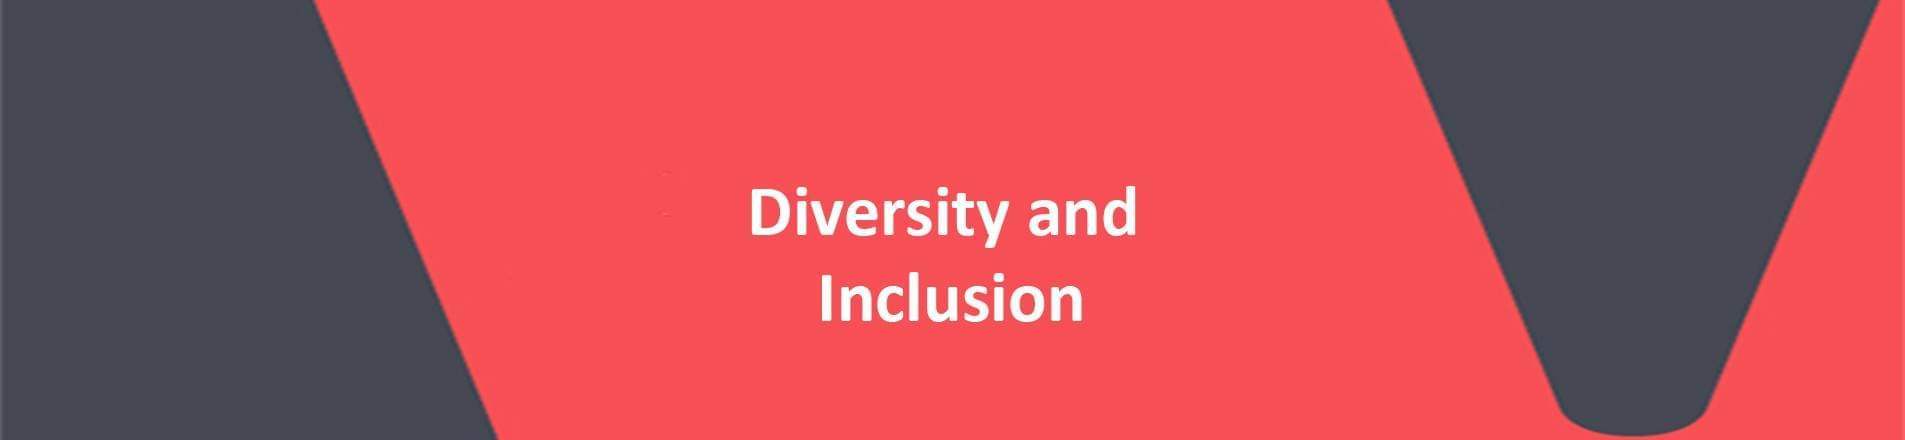 The words Diversity and Inclusion on a red VERCIDA branded background